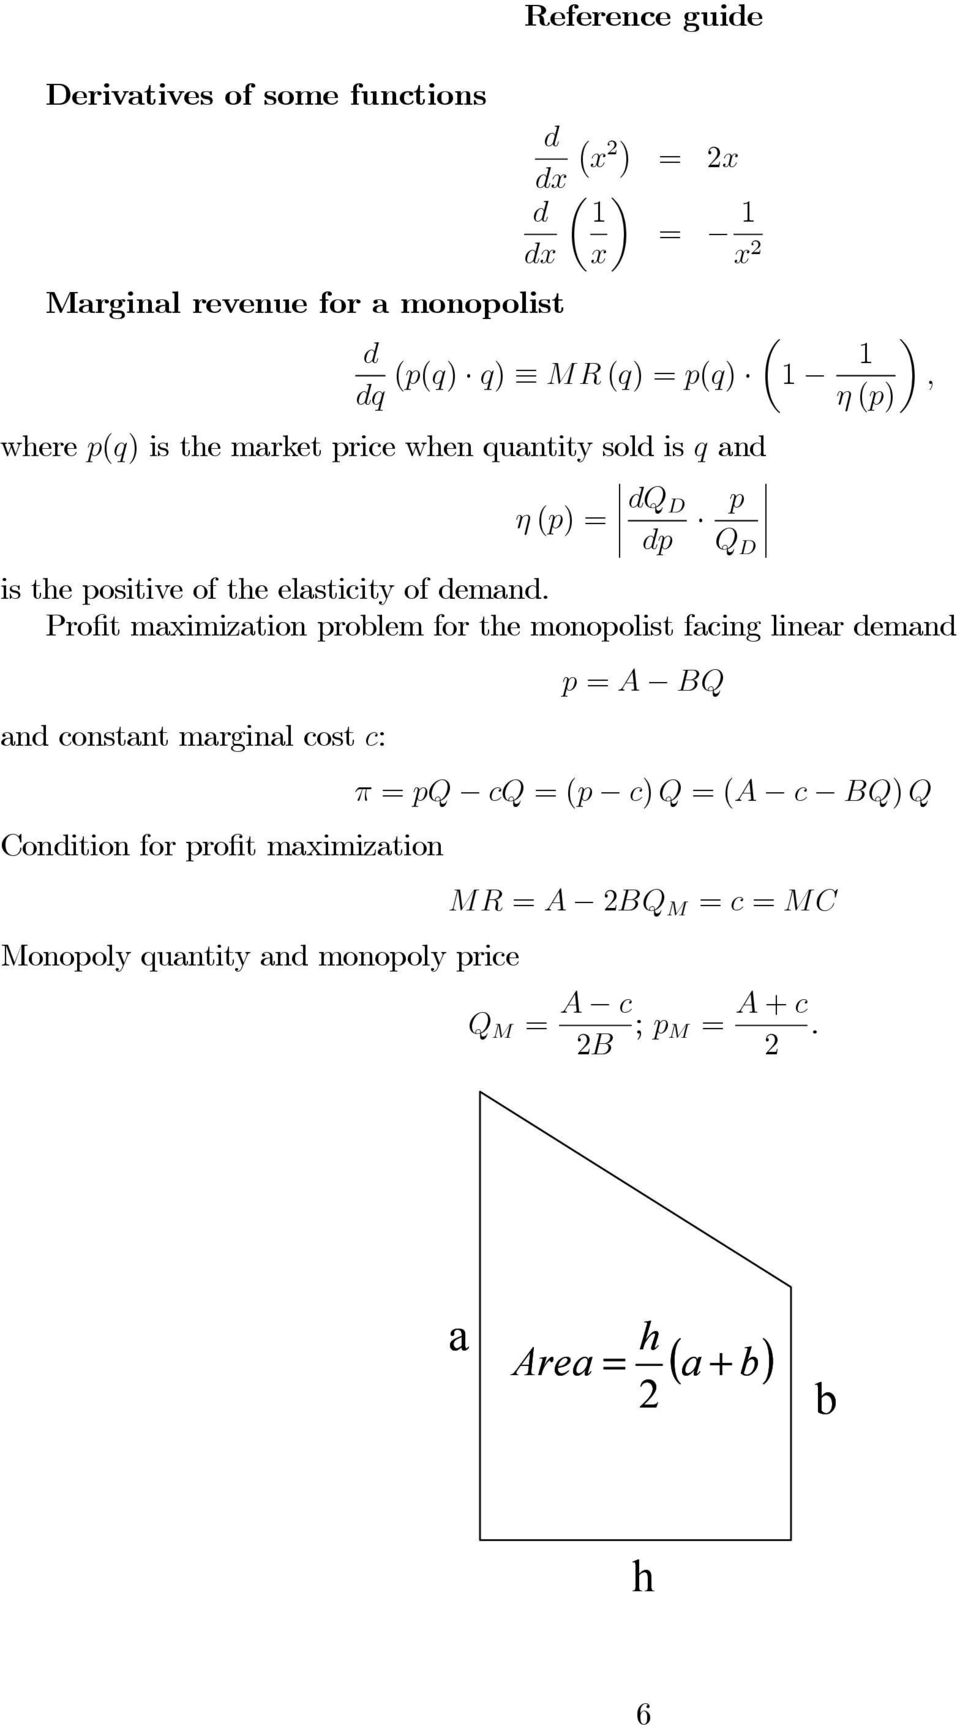 Profit maximization problem for the monopolist facing linear demand and constant marginal cost c: Condition for profit maximization